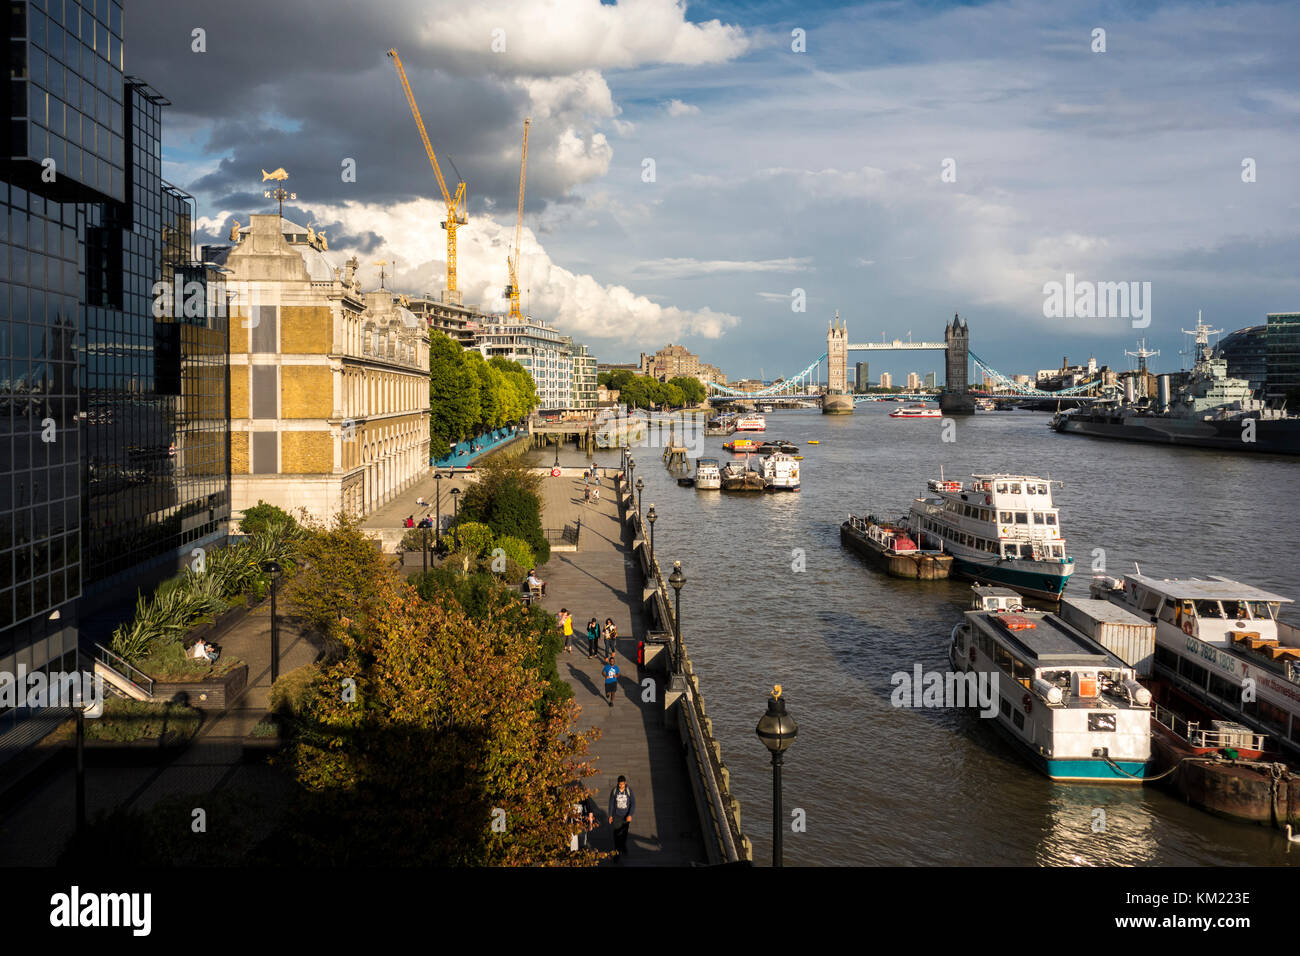 View along the Thames towards Tower Bridge looking down on Old Billingsgate Walk and Dark House Walk, Thames path. Stock Photo